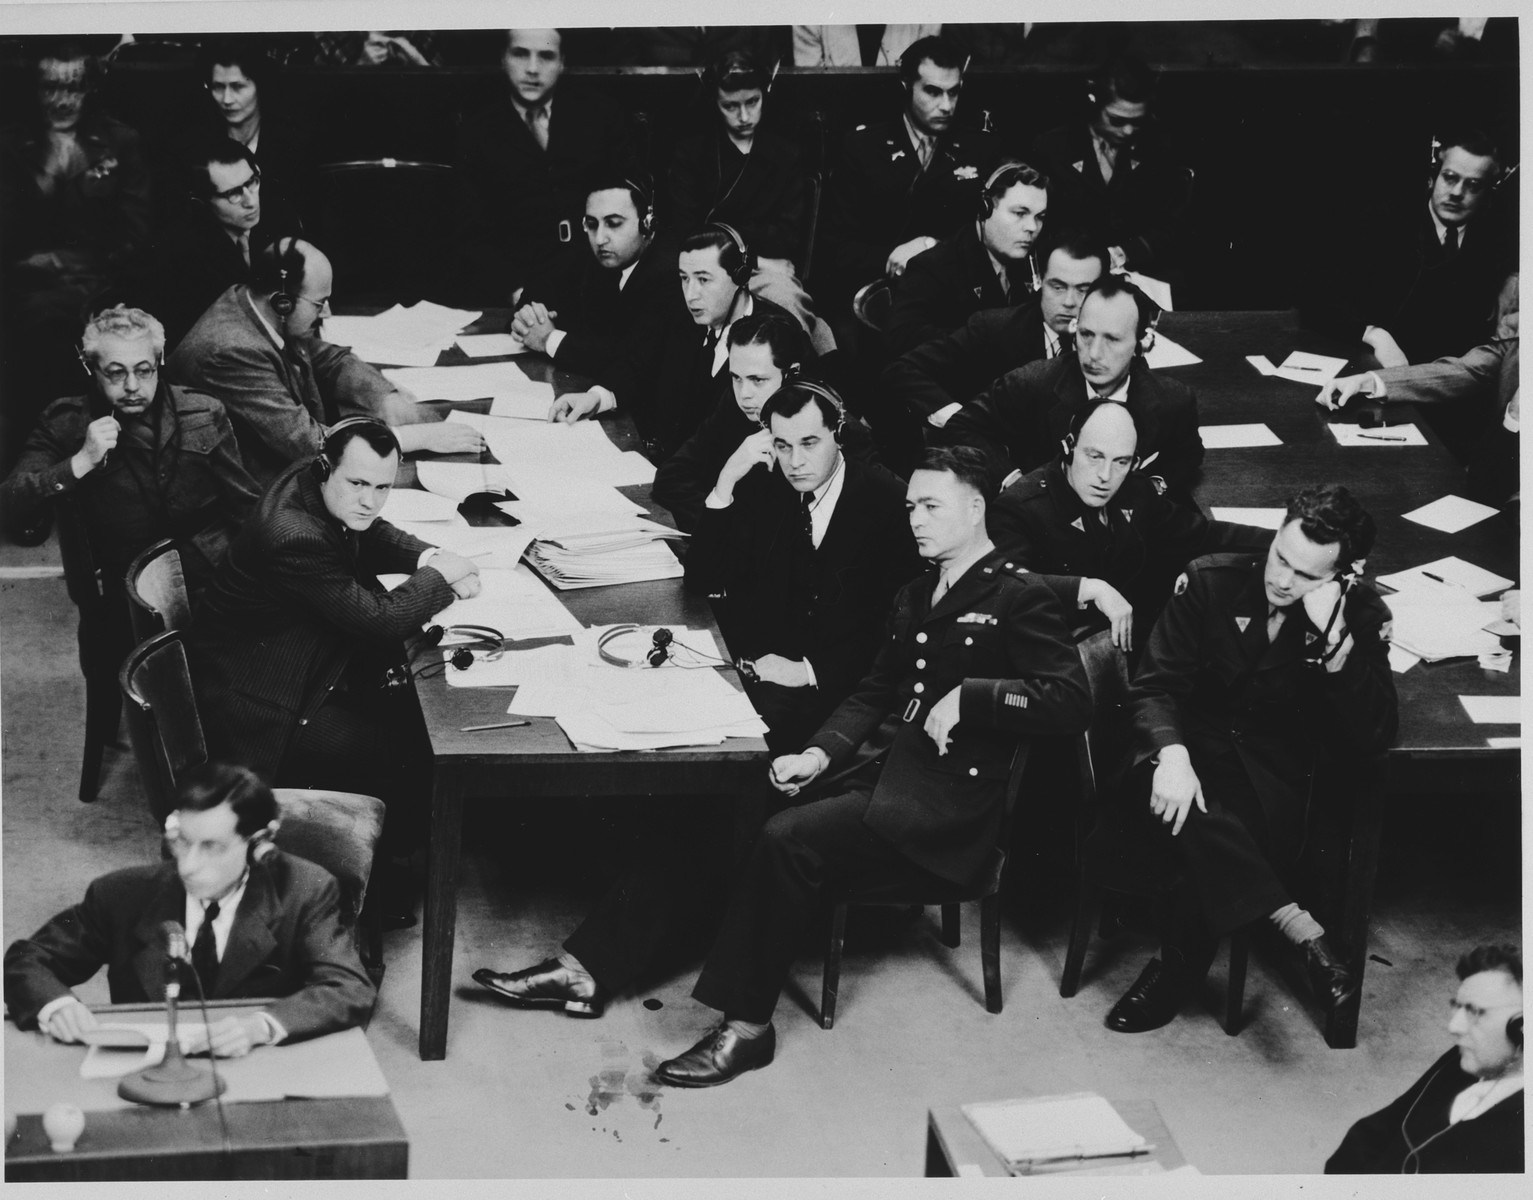 The prosecution team at the Doctors Trial.  Pictured in the center of the foreground is Chief of Counsel Brigadier General Telford Taylor.